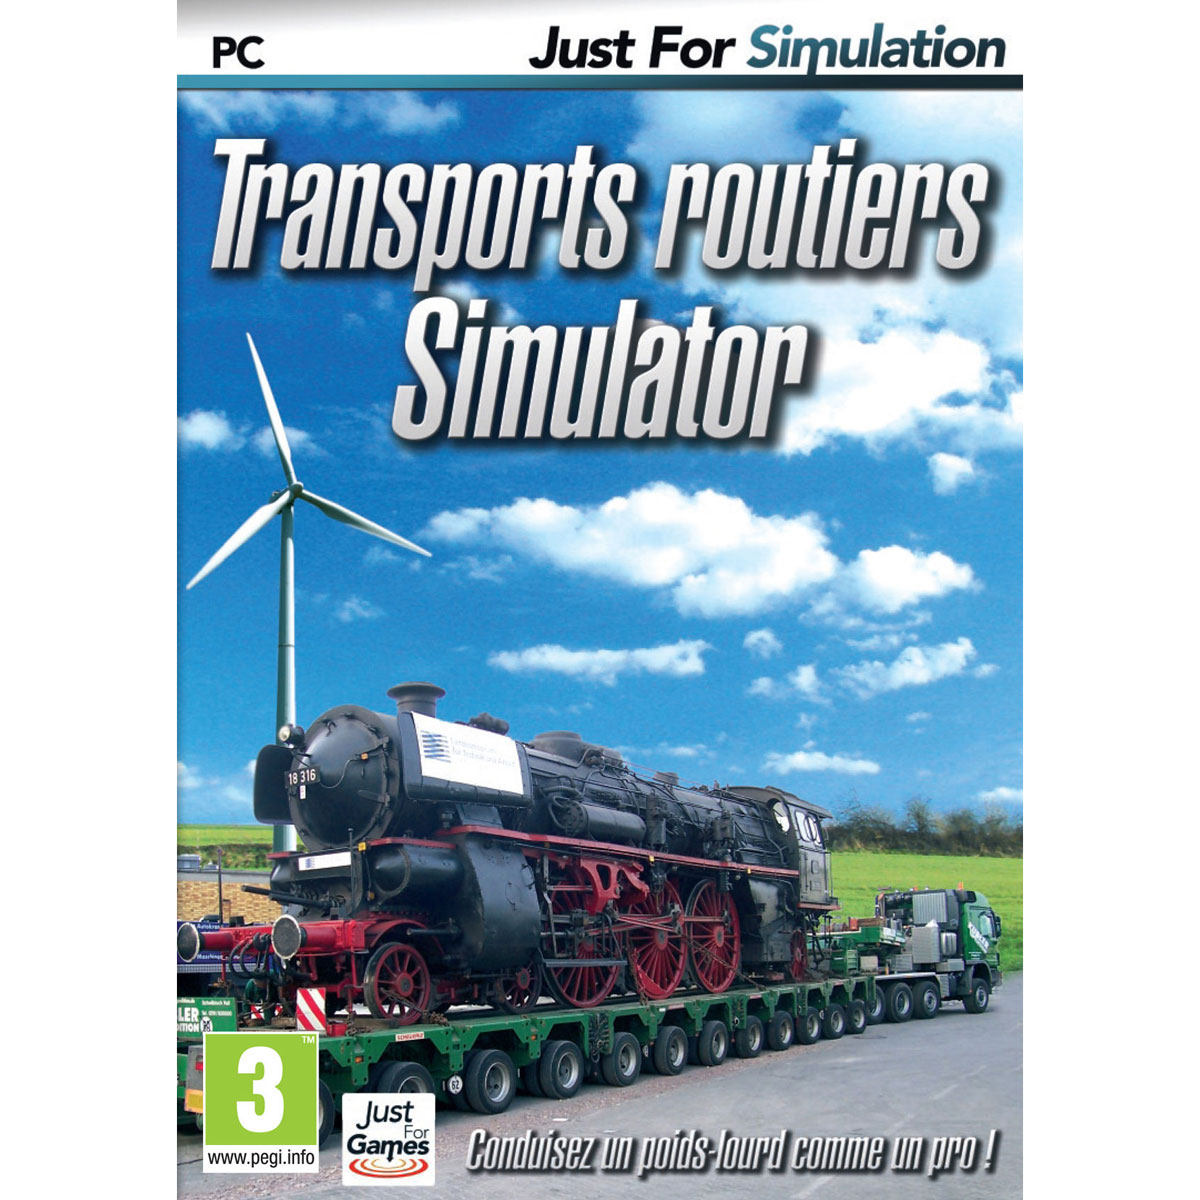 transport routiers simulator pc jeux pc just for games sur. Black Bedroom Furniture Sets. Home Design Ideas